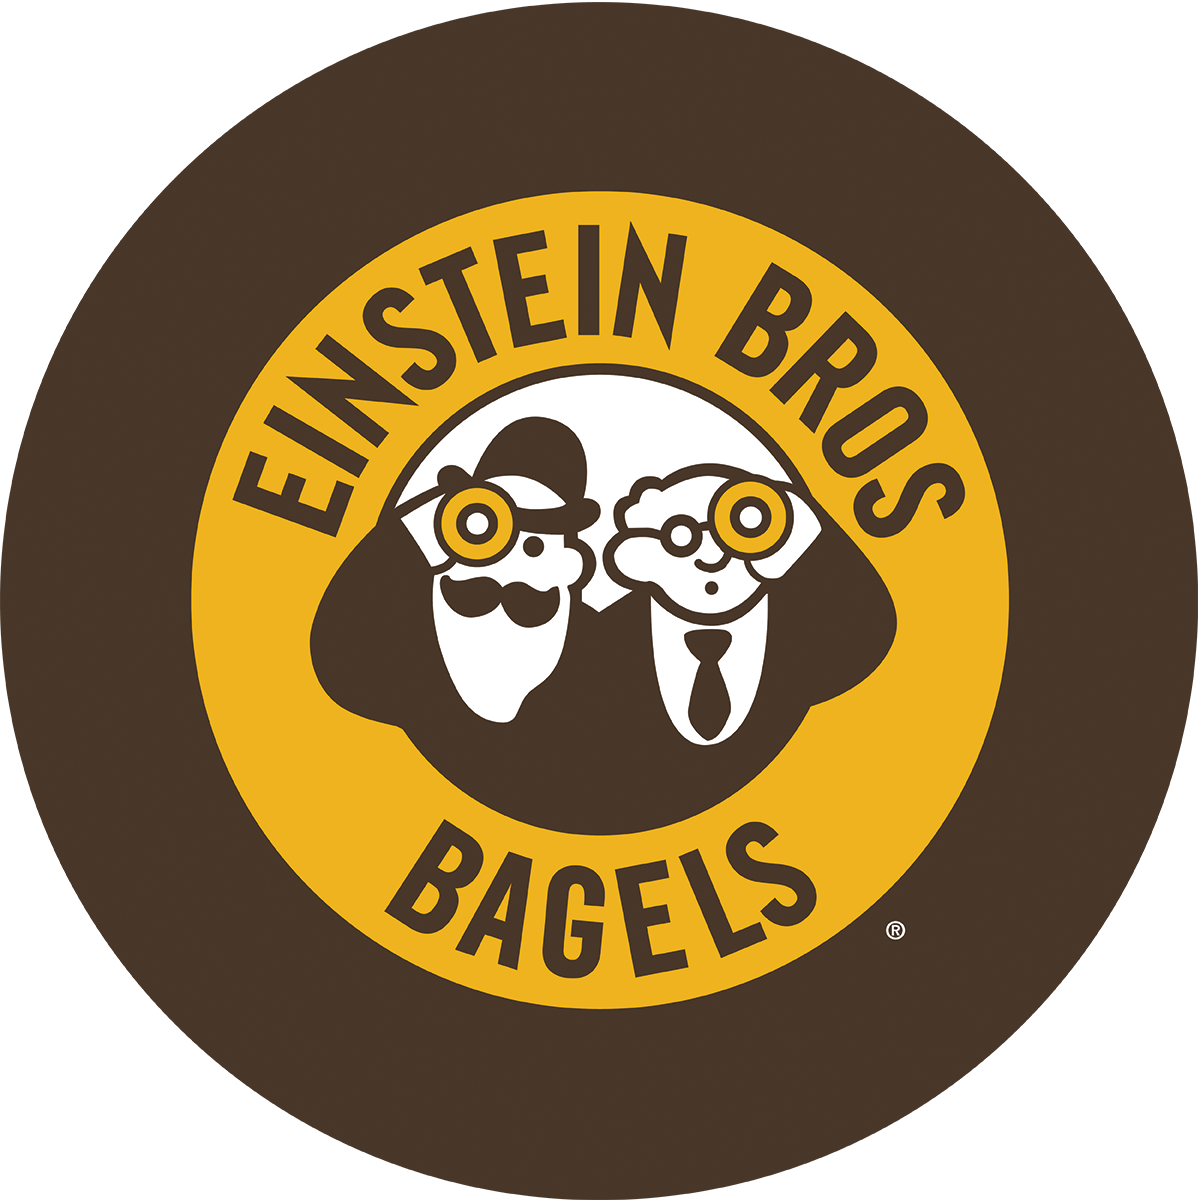 image of Einstein Bros. Bagels